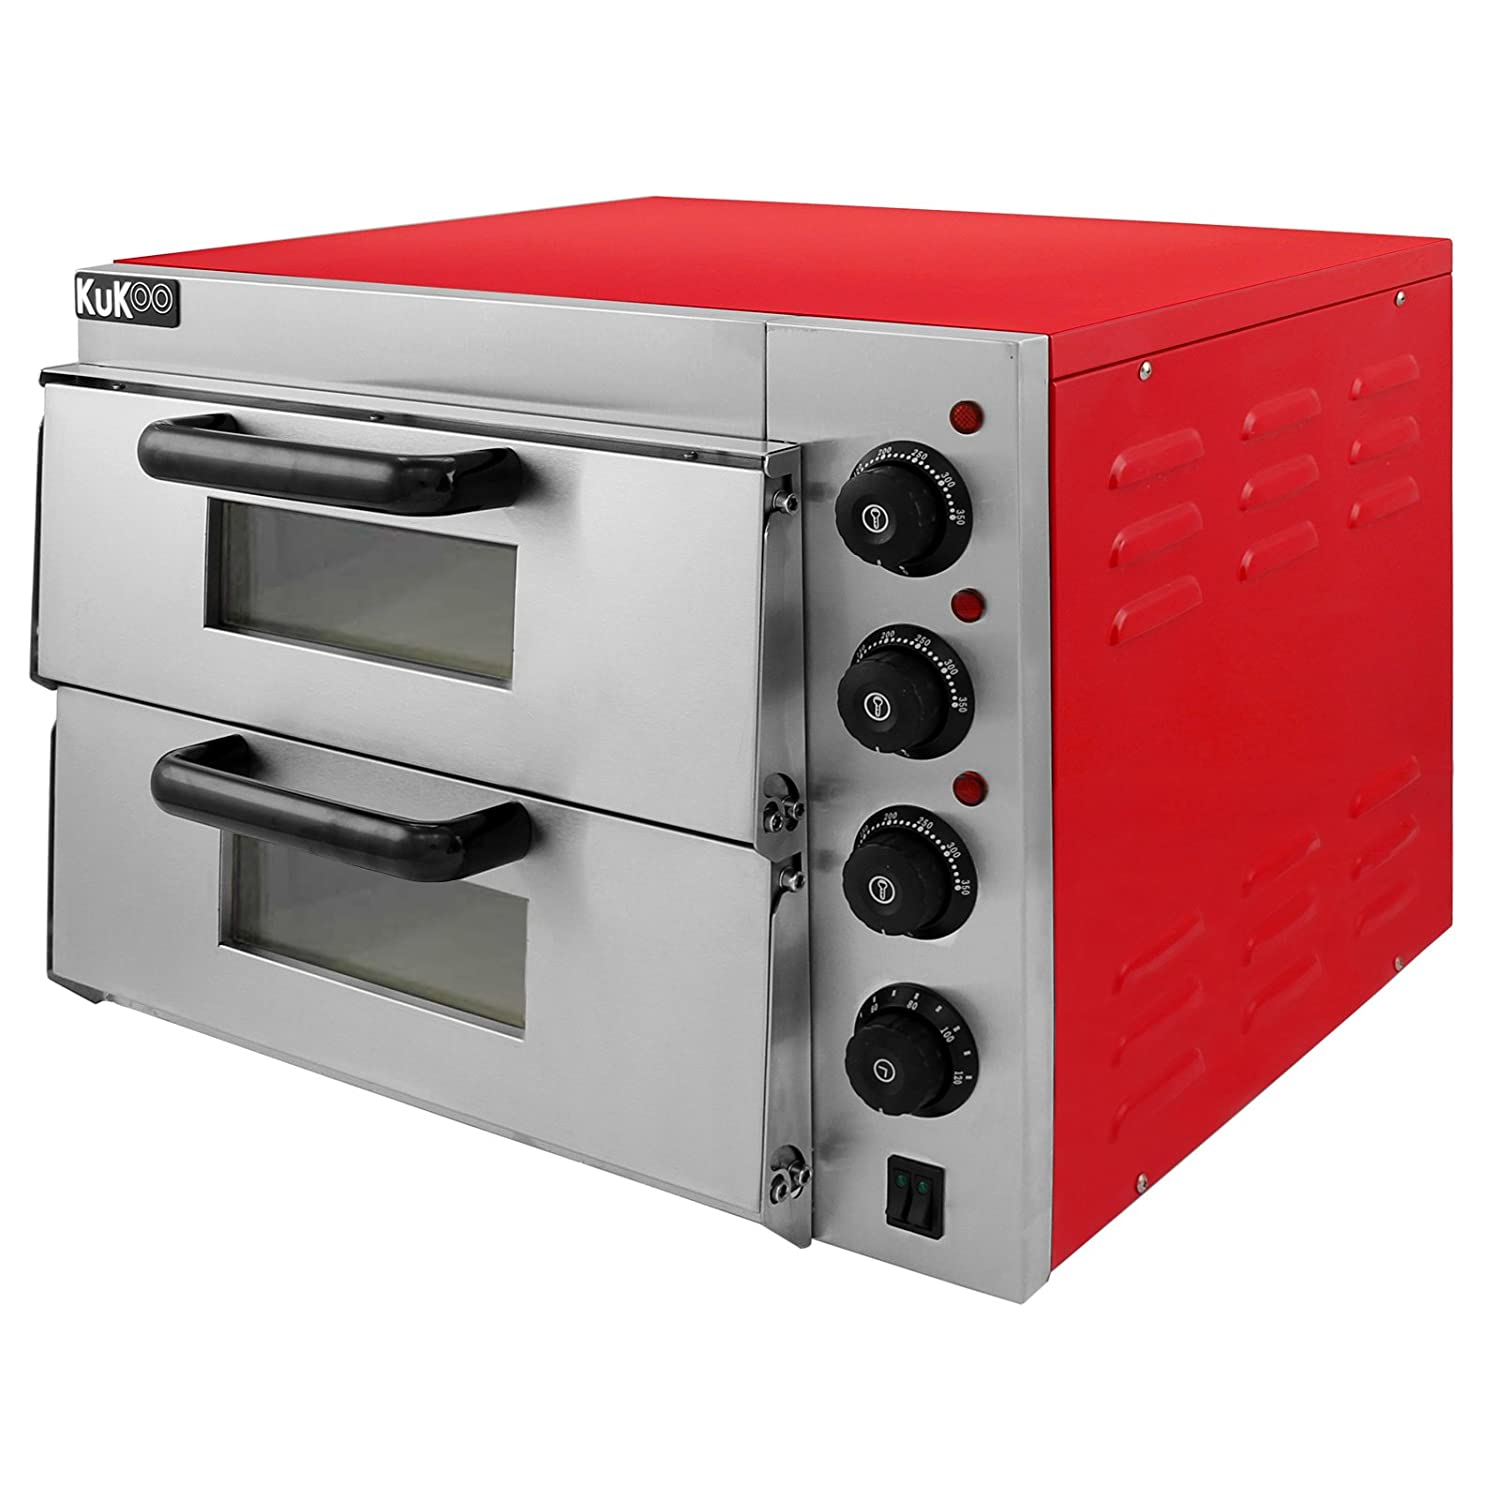 electric pizza oven with audible timer u0026 twin deck firebrick commercial baking u0026 grilling amazoncouk large appliances